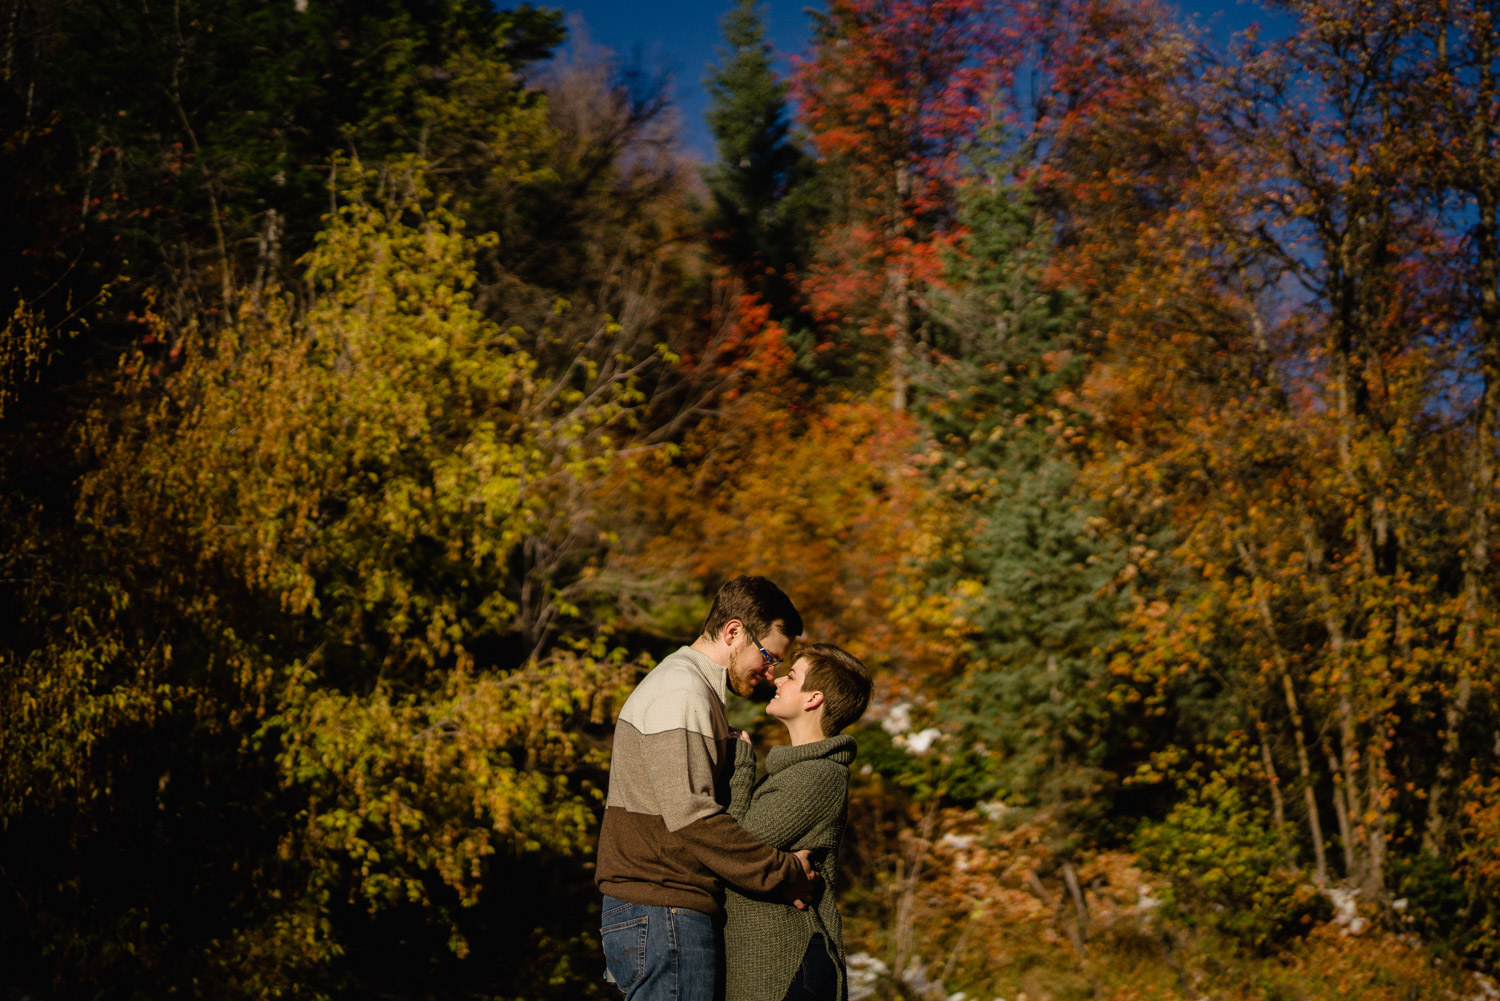 happy couple together with trees under night sky fall colors